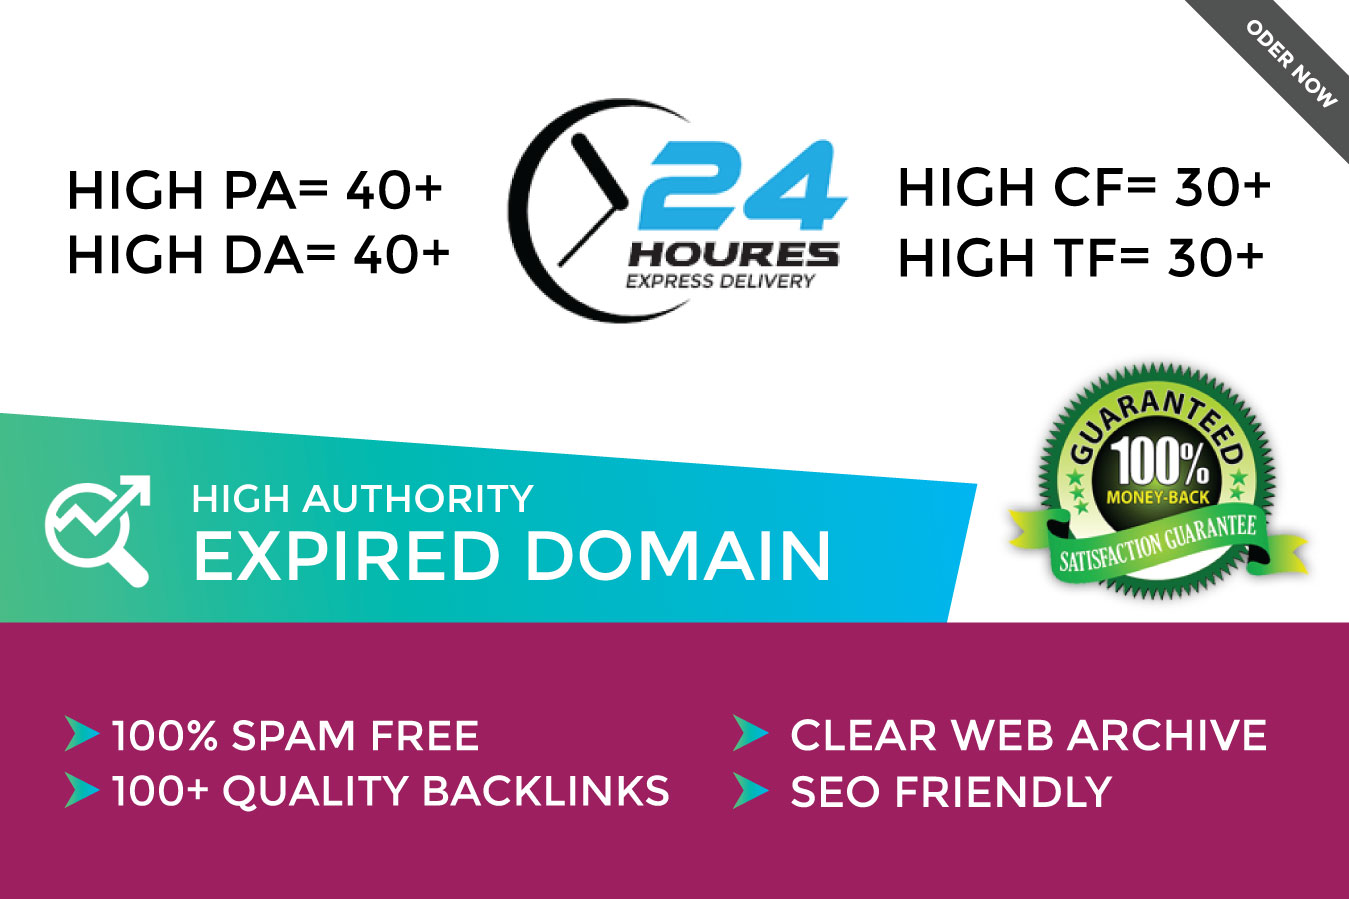 research SEO friendly authority expired domain